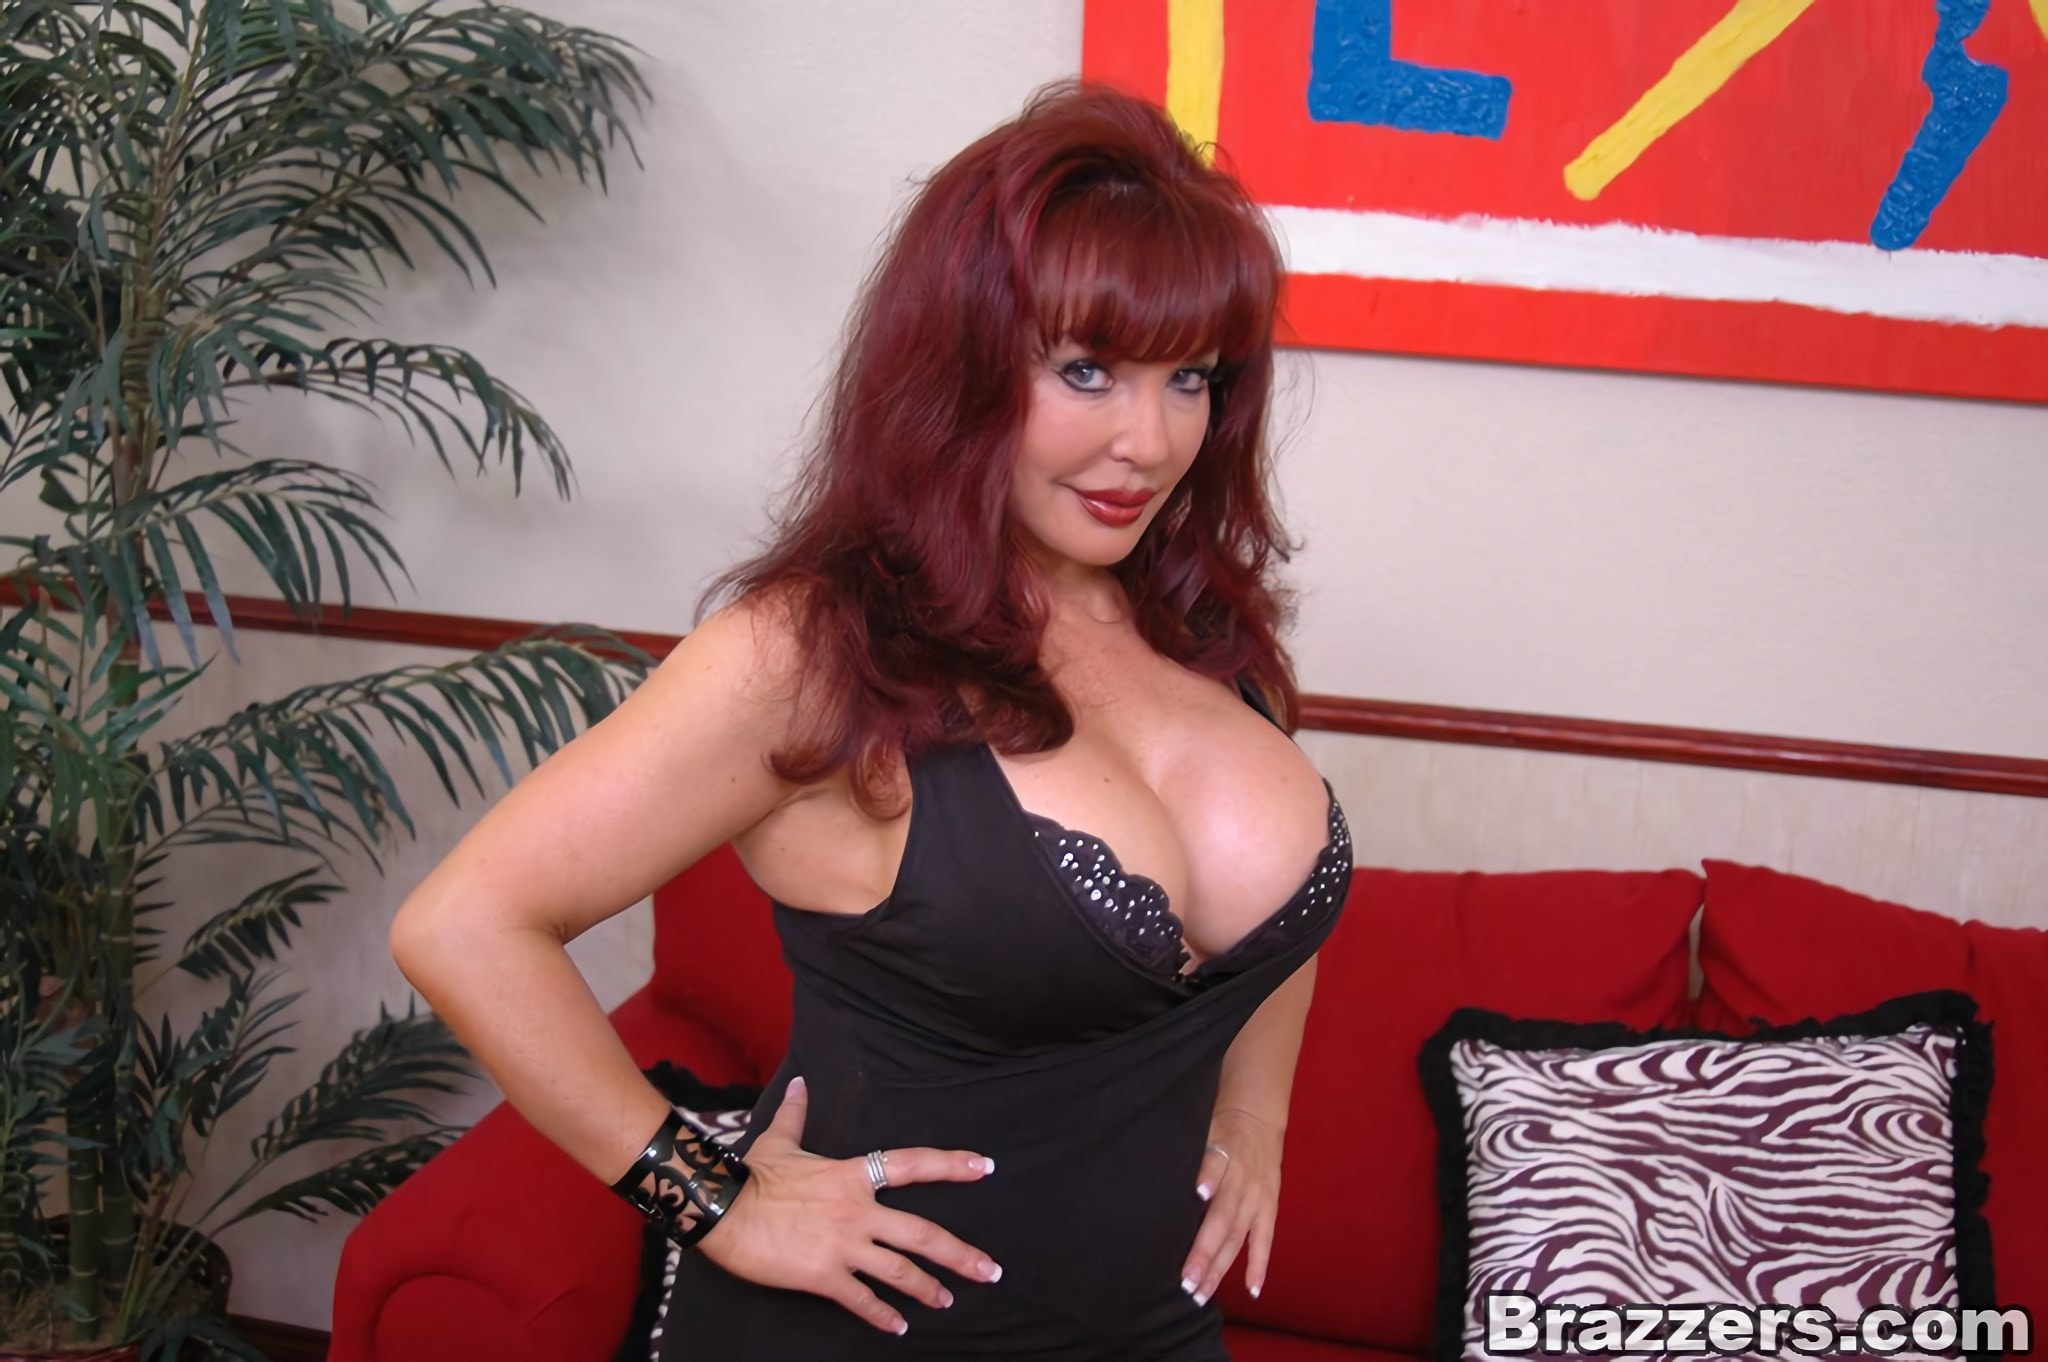 Brazzers 'Hot Busty Milf Nymph Vanessa' starring Sexy Vanessa (Photo 2)